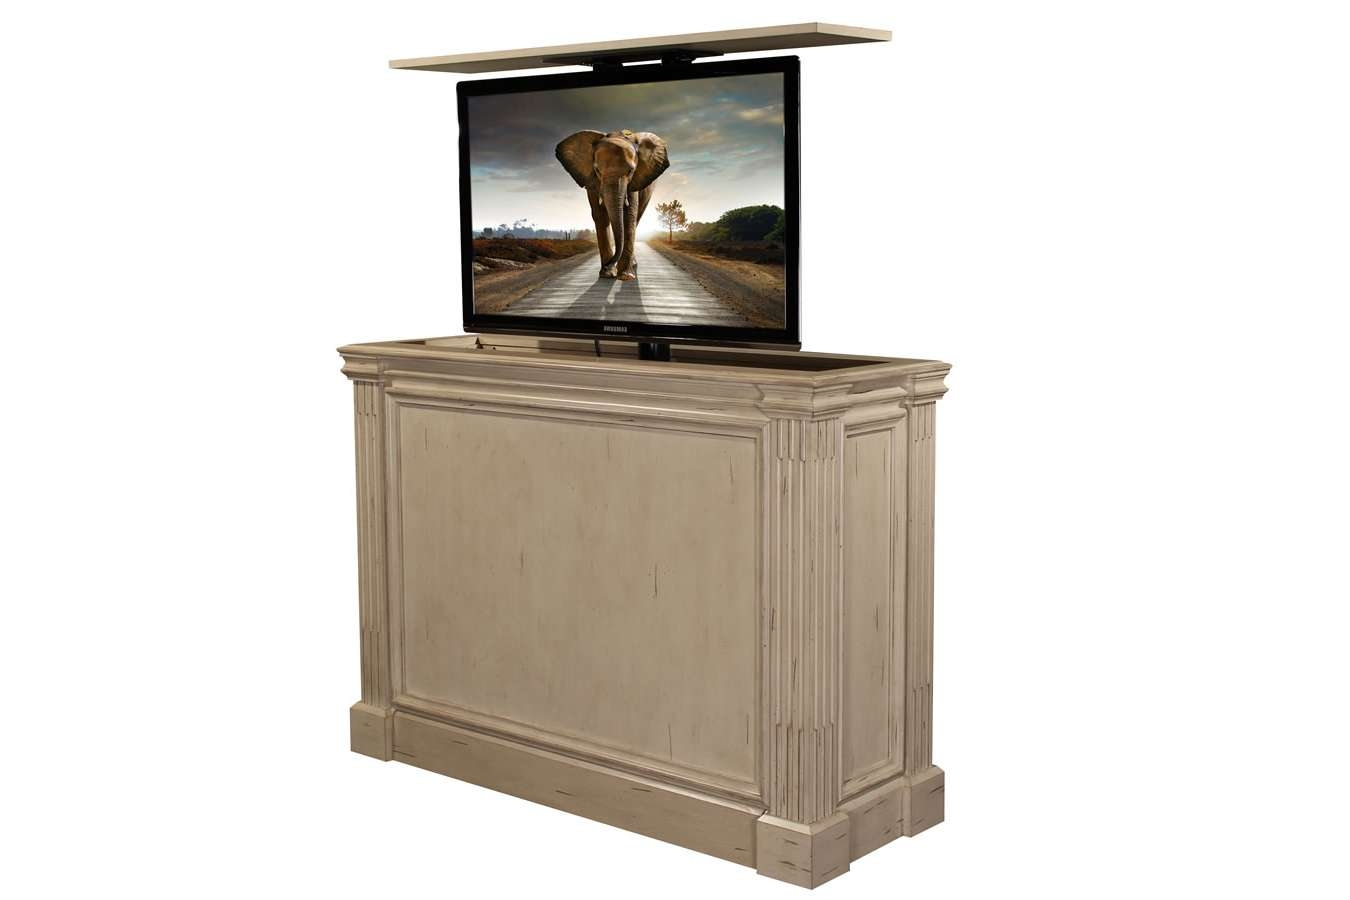 Hidden Tv Cabinet | Pop Up Tv Cabinet | Transitional Tv Cabinets Inside Pop Up Tv Stands (View 6 of 20)